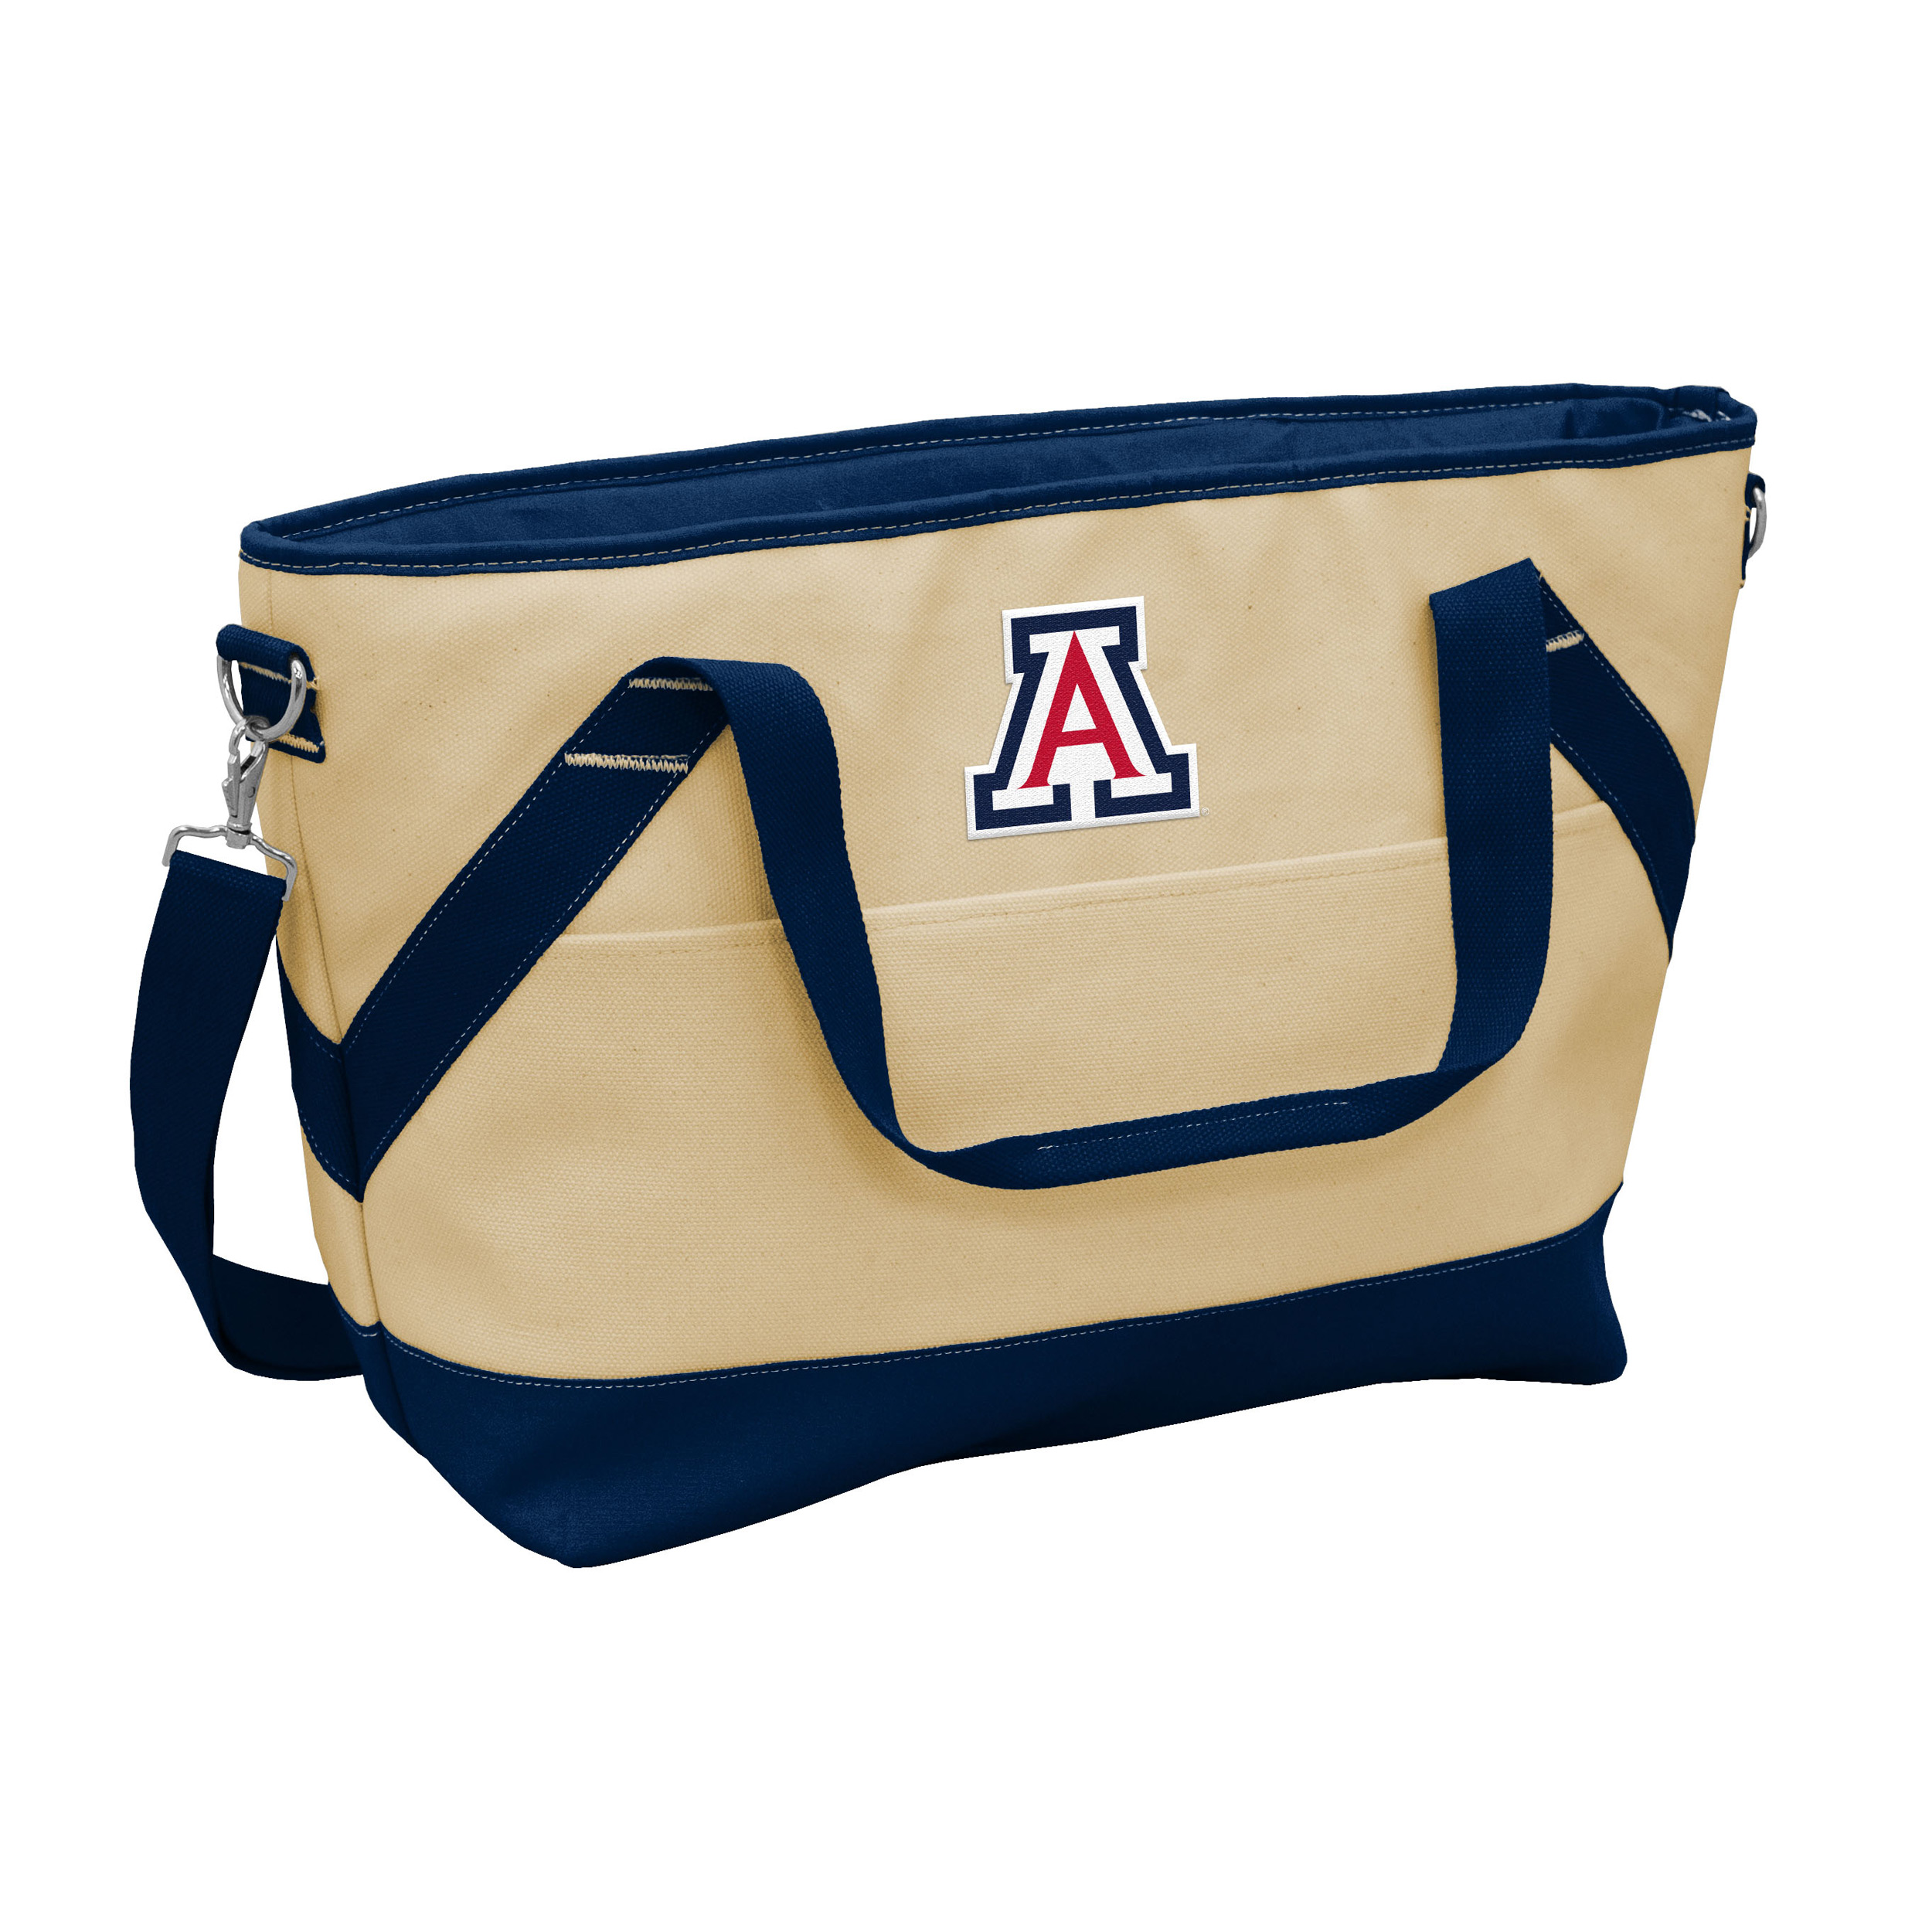 Image For LOGO Brands: Arizona Brentwood Cooler Tote